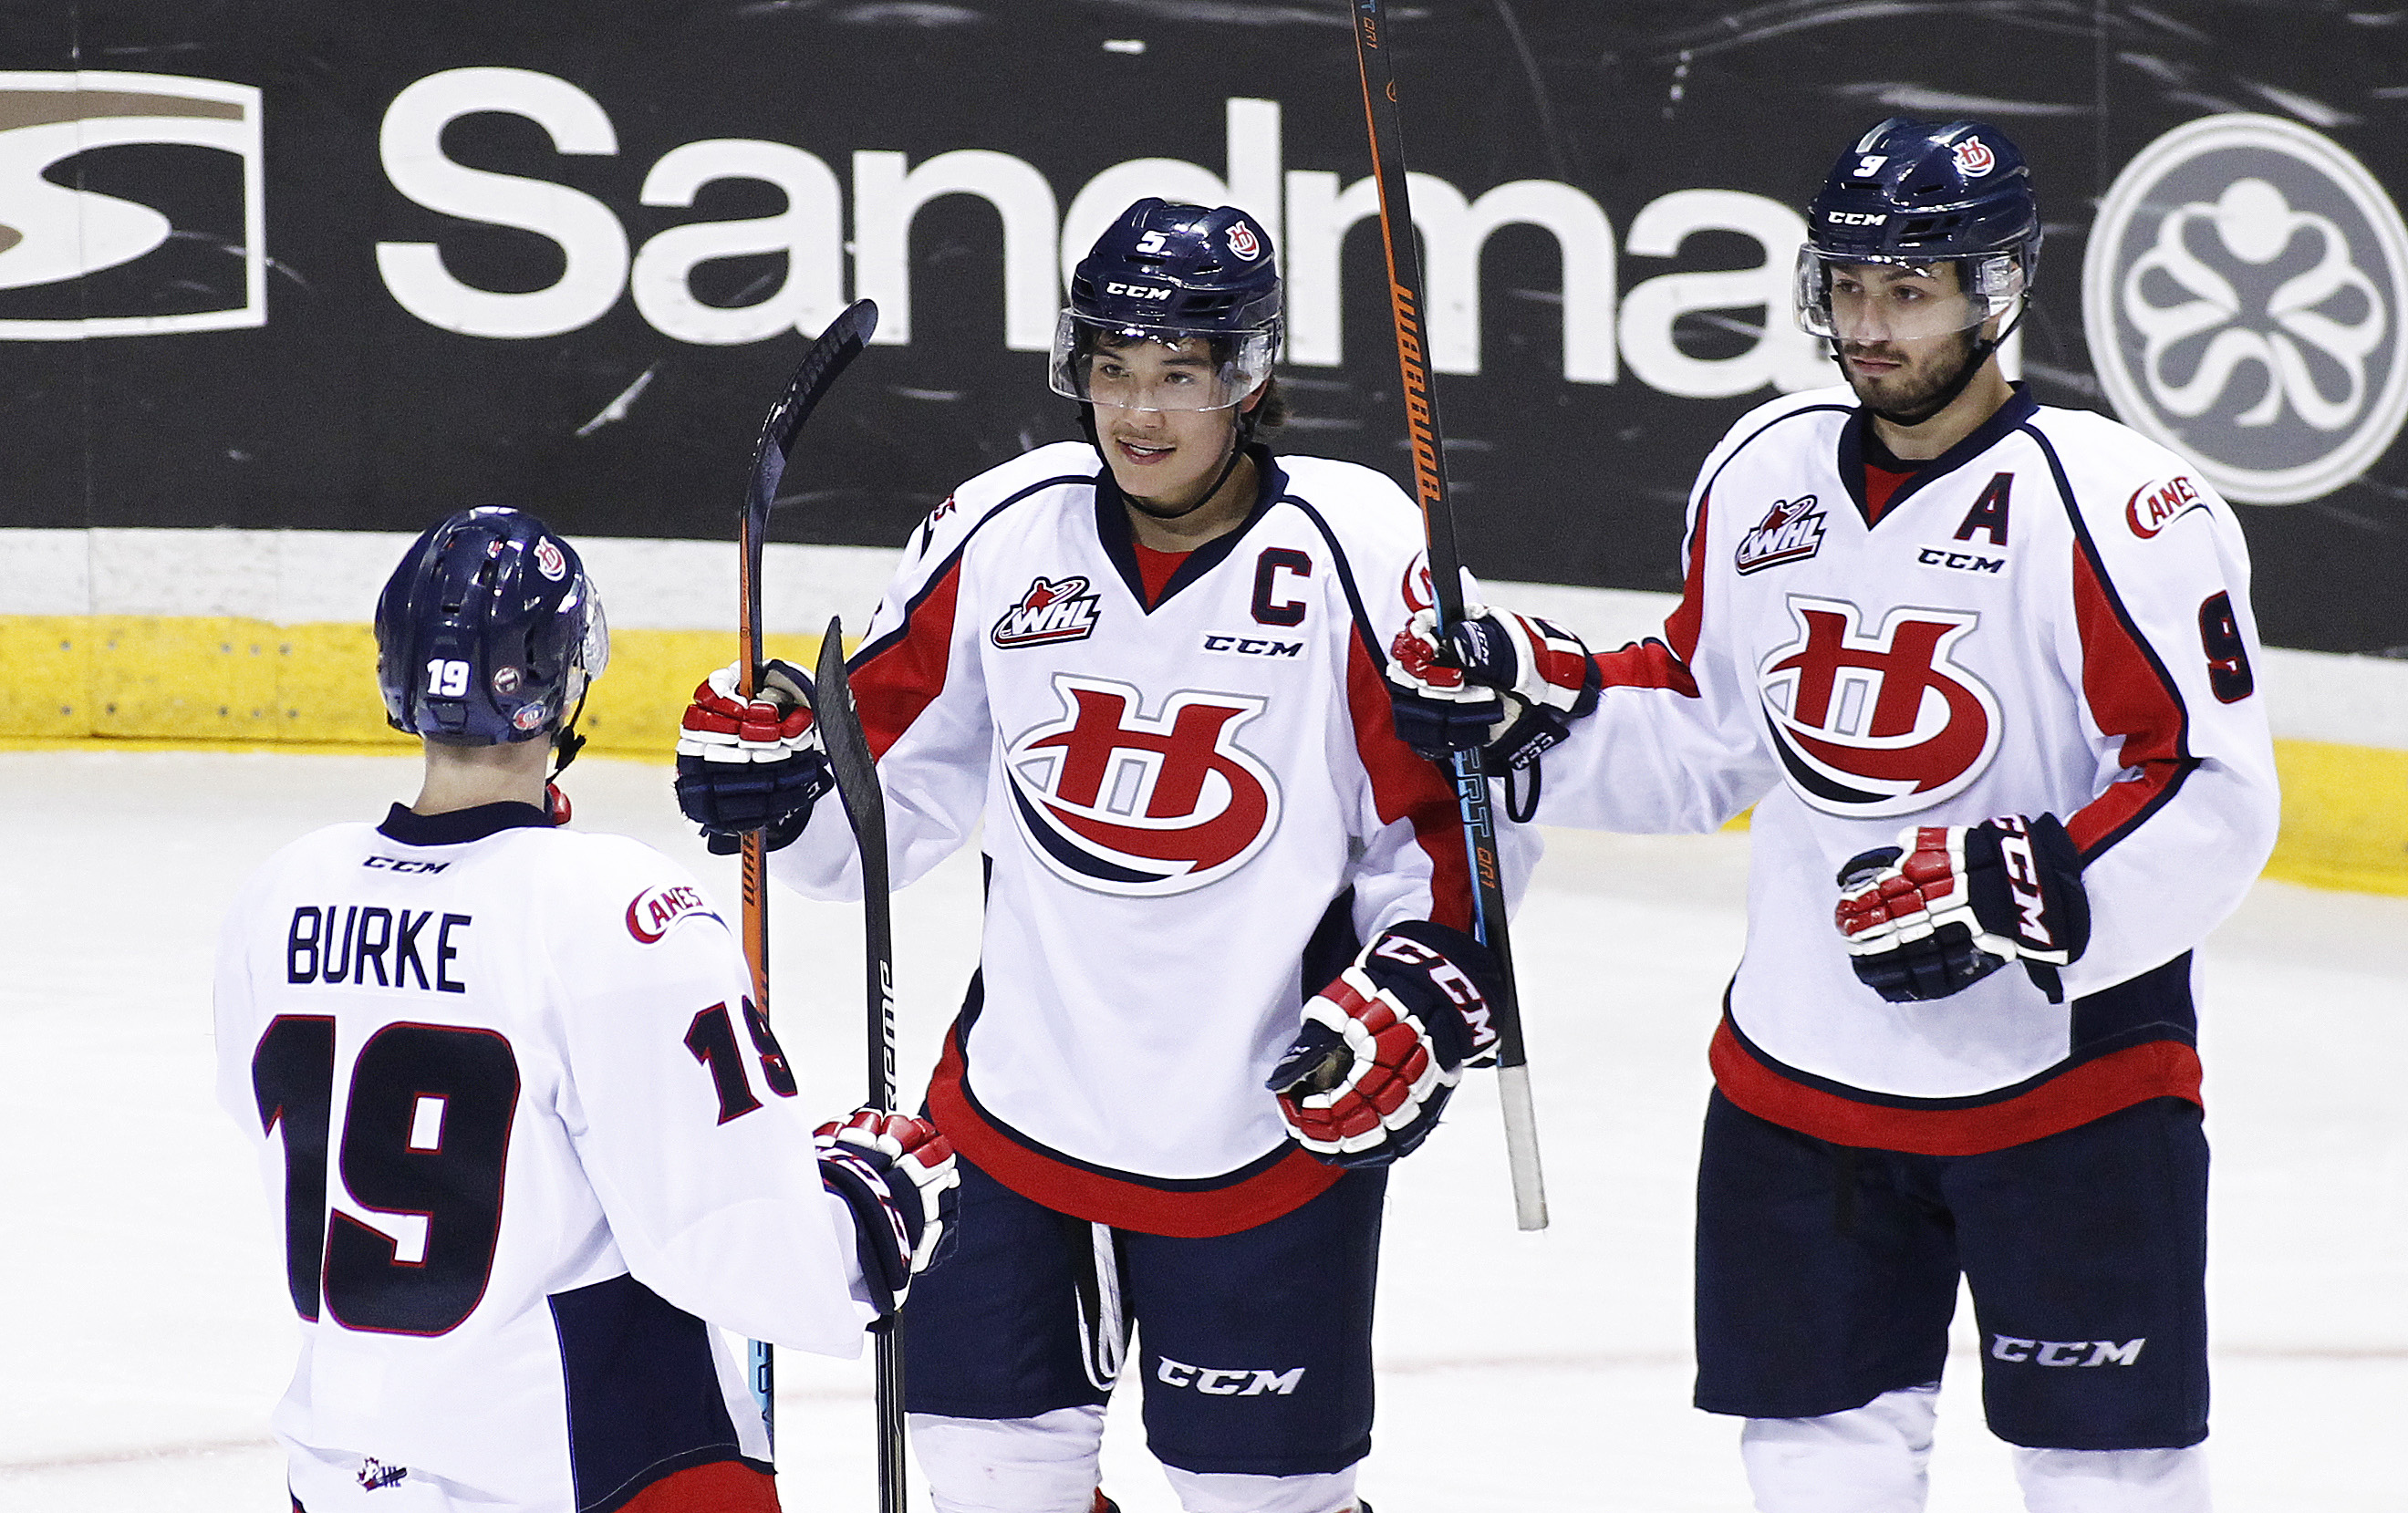 VANCOUVER, BC - OCTOBER 28: Tyler Wong #5 of the Lethbridge Hurricanes celebrates his goal against the Vancouver Giants with teammates Giorgio Estephan #9 and Brayden Burke #19 during the first period of their WHL game at the Pacific Coliseum on October 28, 2015 in Vancouver, British Columbia, Canada. (Photo by Ben Nelms/Getty Images)